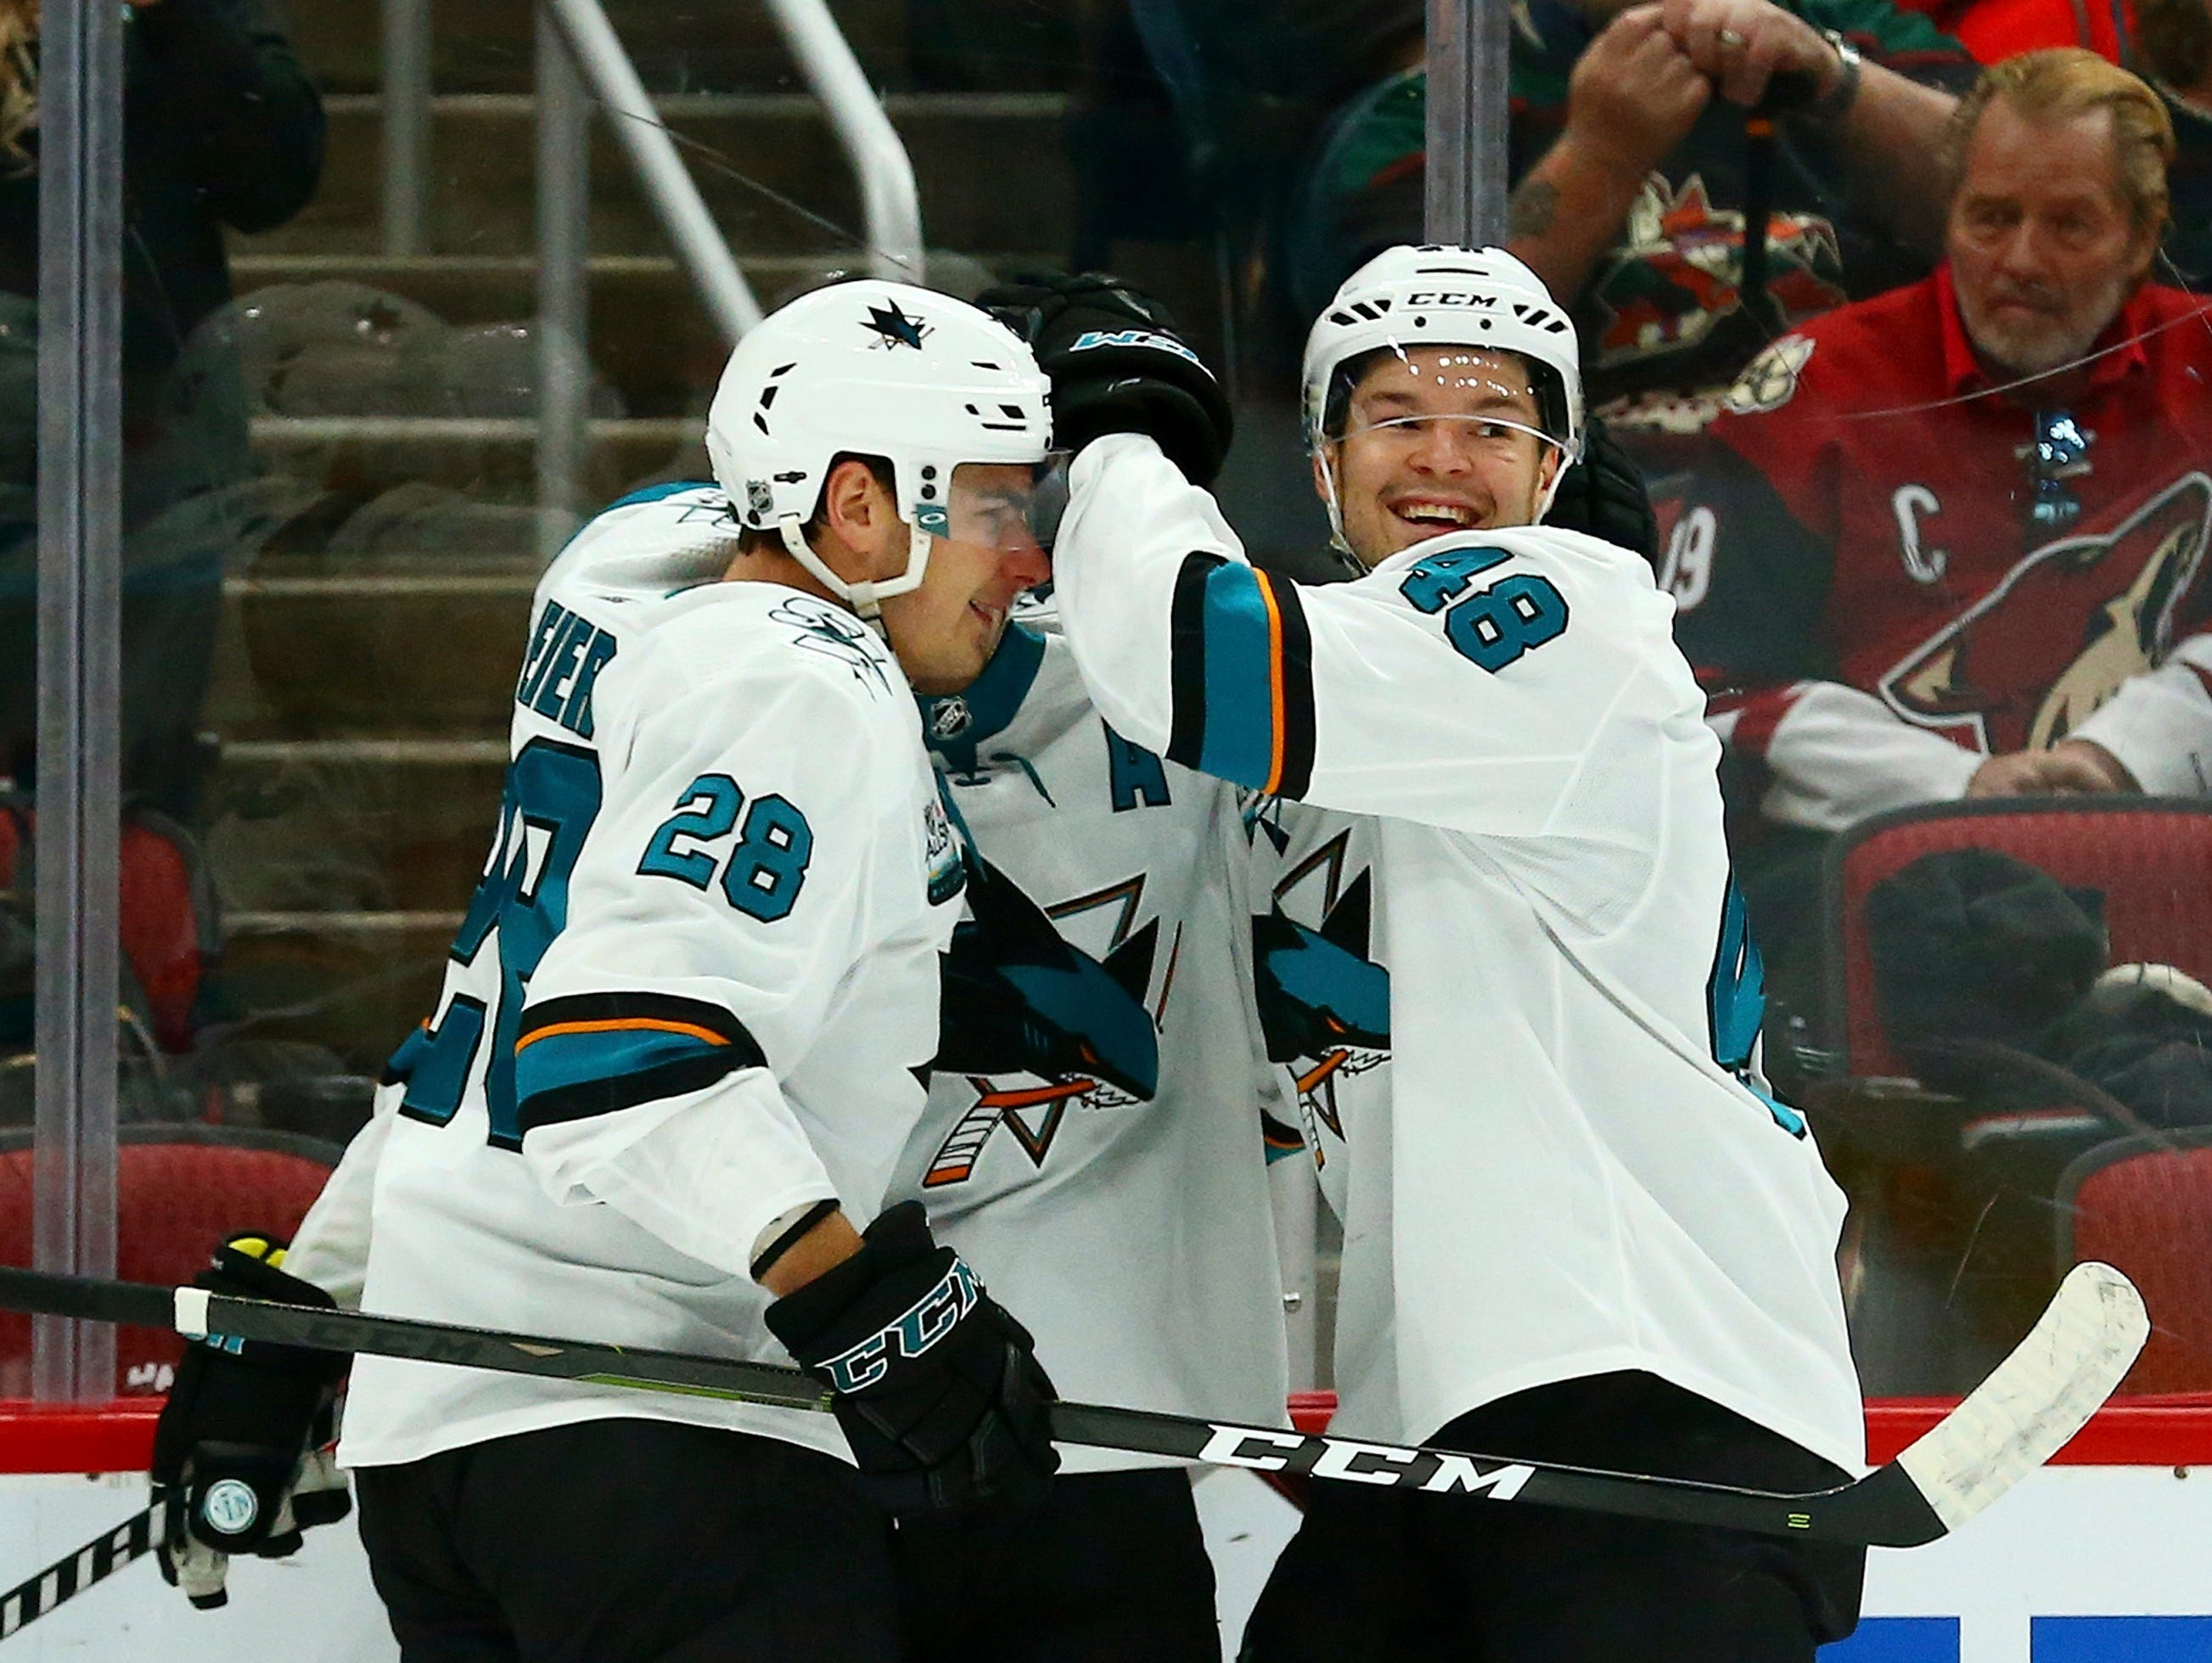 San Jose Sharks center Logan Couture, middle, celebrates his goal against the Arizona Coyotes with Sharks right wing Timo Meier (28) and center Tomas Hertl (48) during the first period of an NHL hockey game, Saturday, Dec. 8, 2018, in Phoenix.